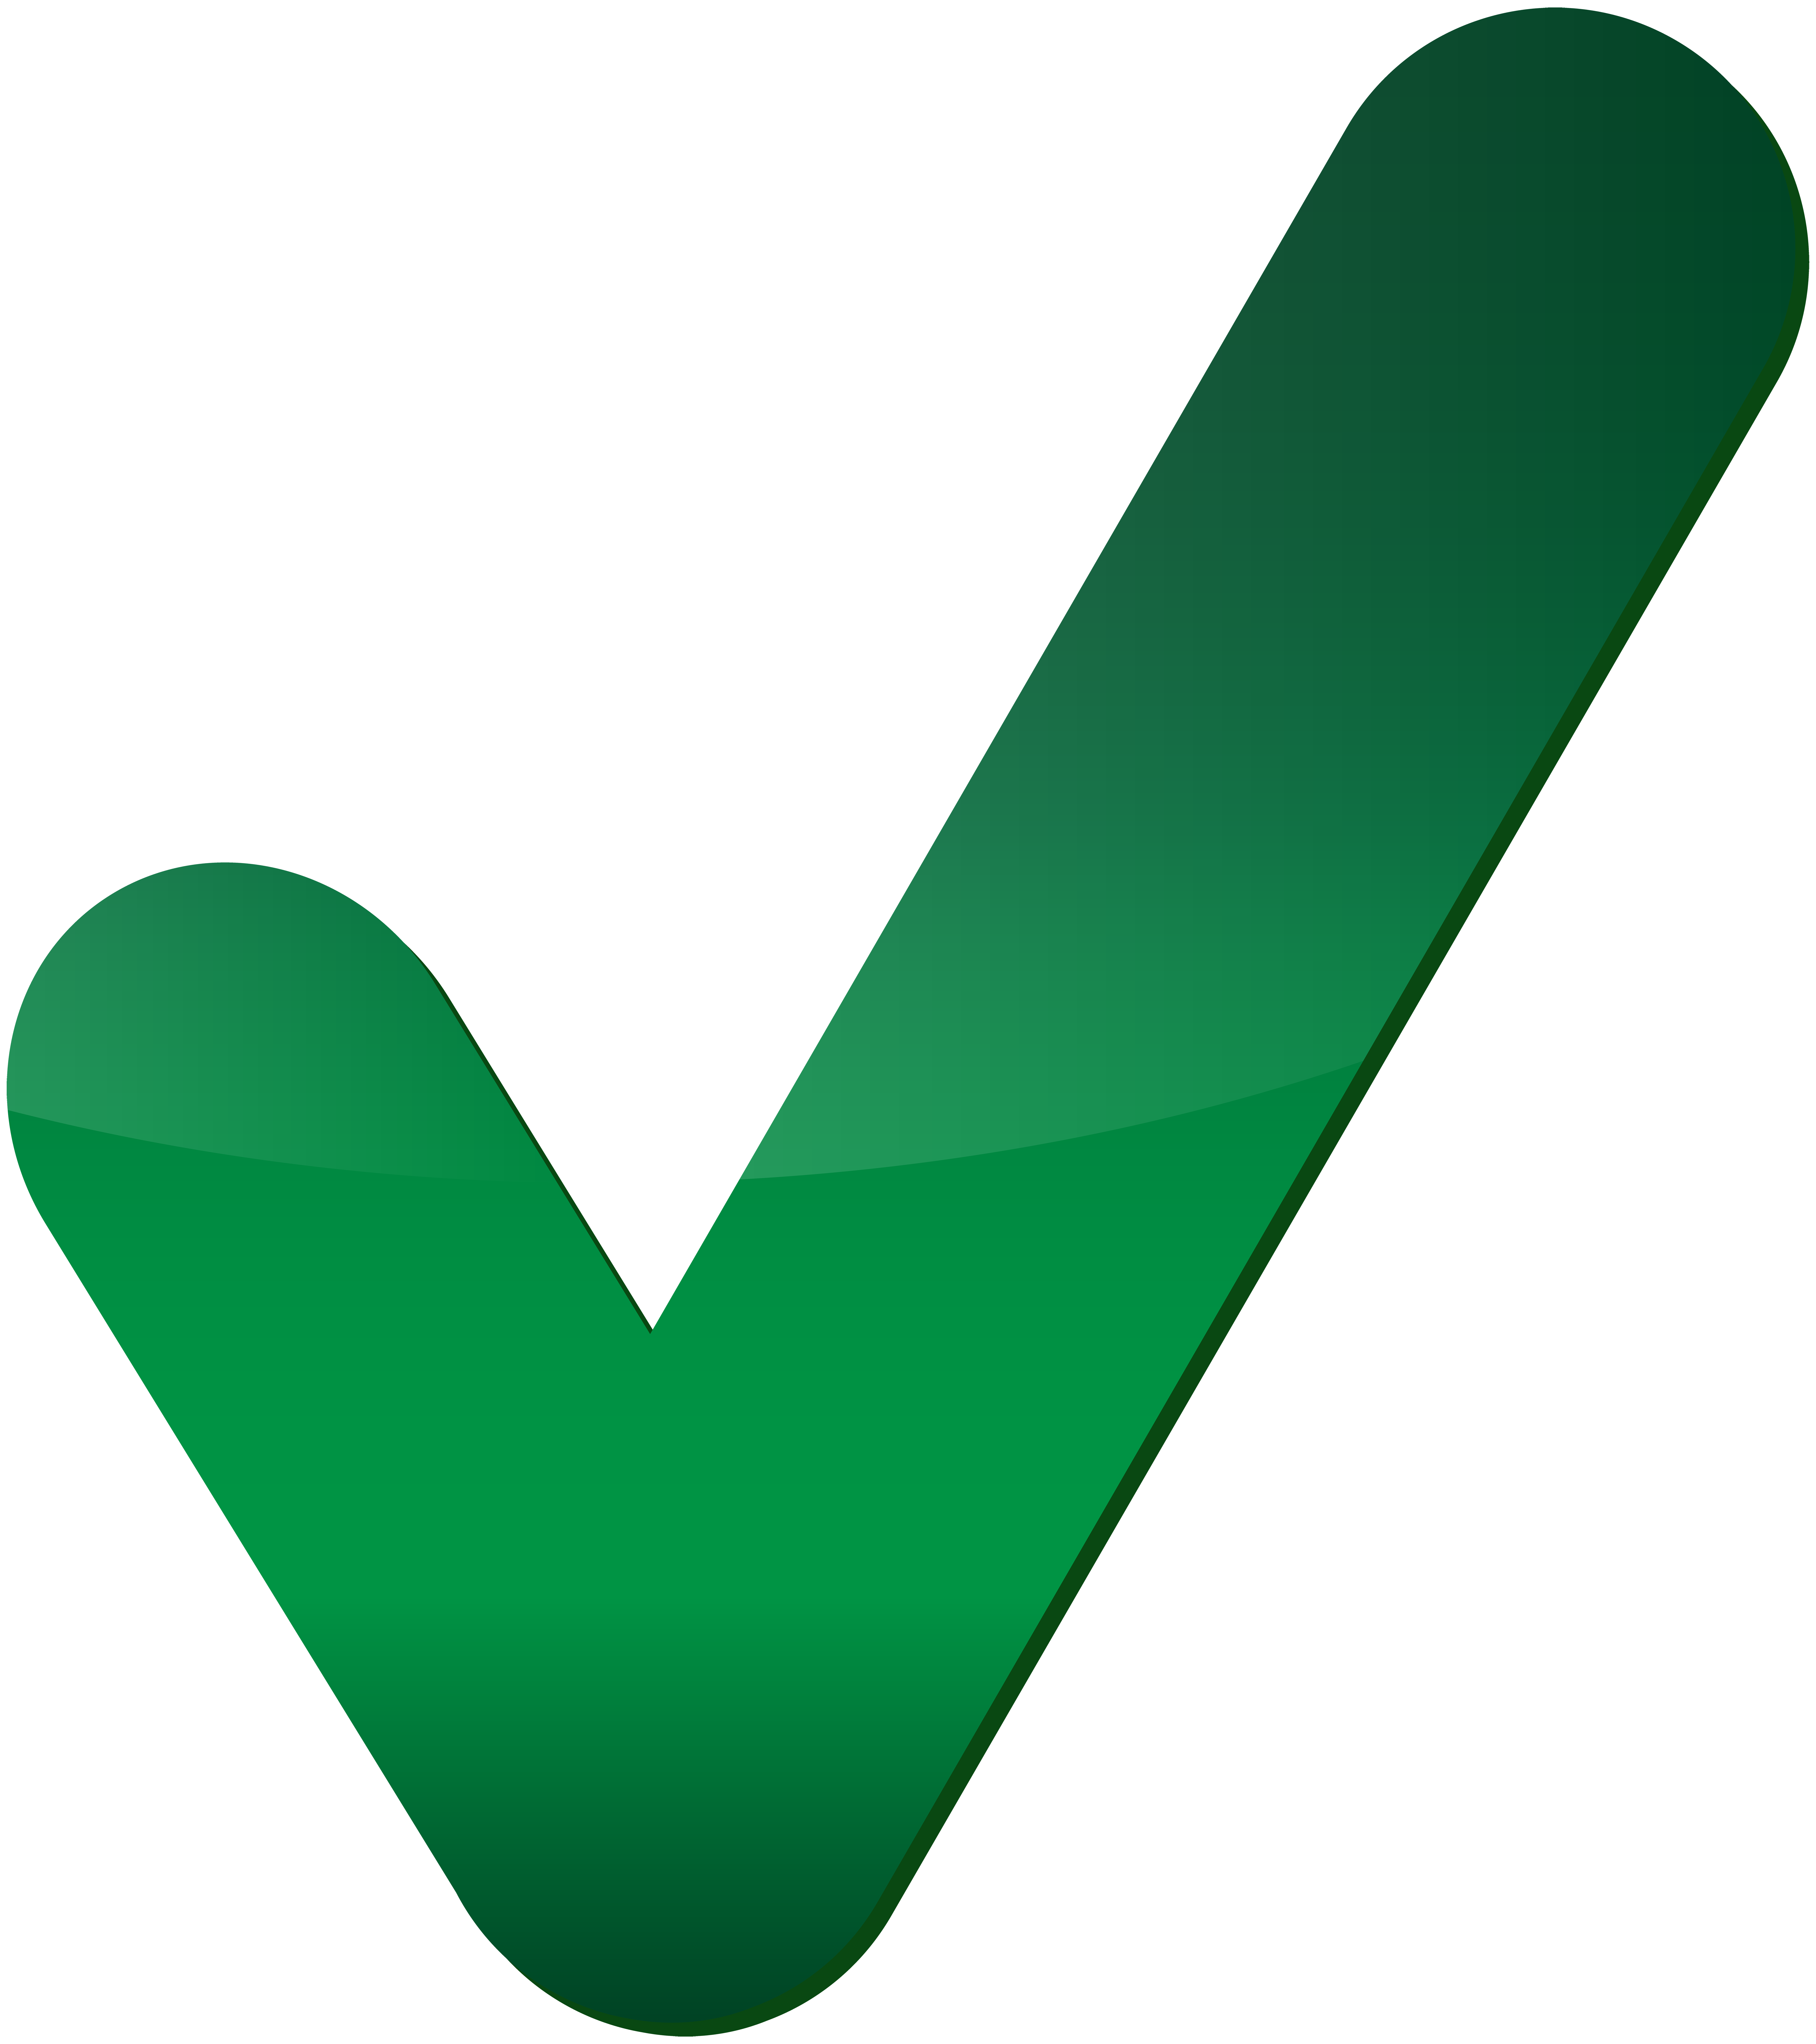 Check mark clip art png. Green image gallery yopriceville